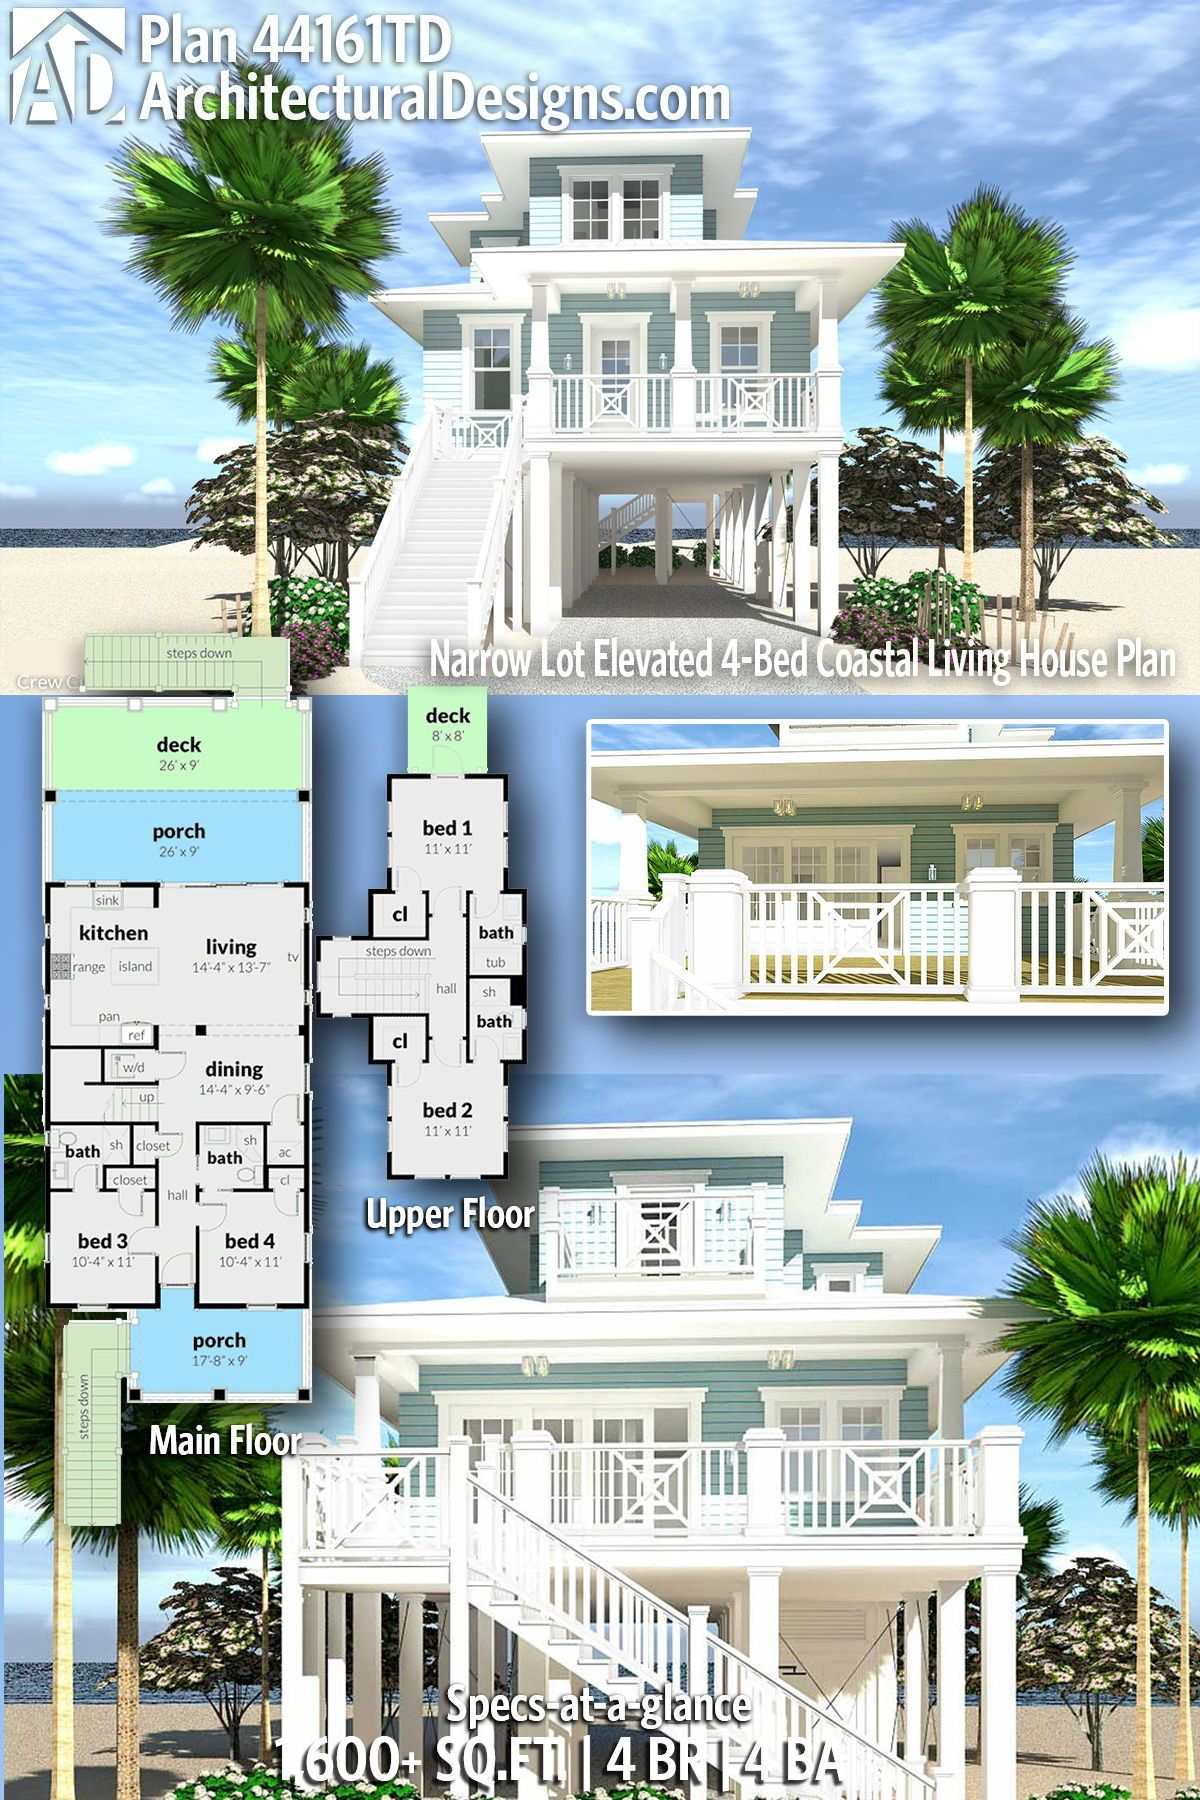 Plan 44161td Narrow Lot Elevated 4 Bed Coastal Living House Plan